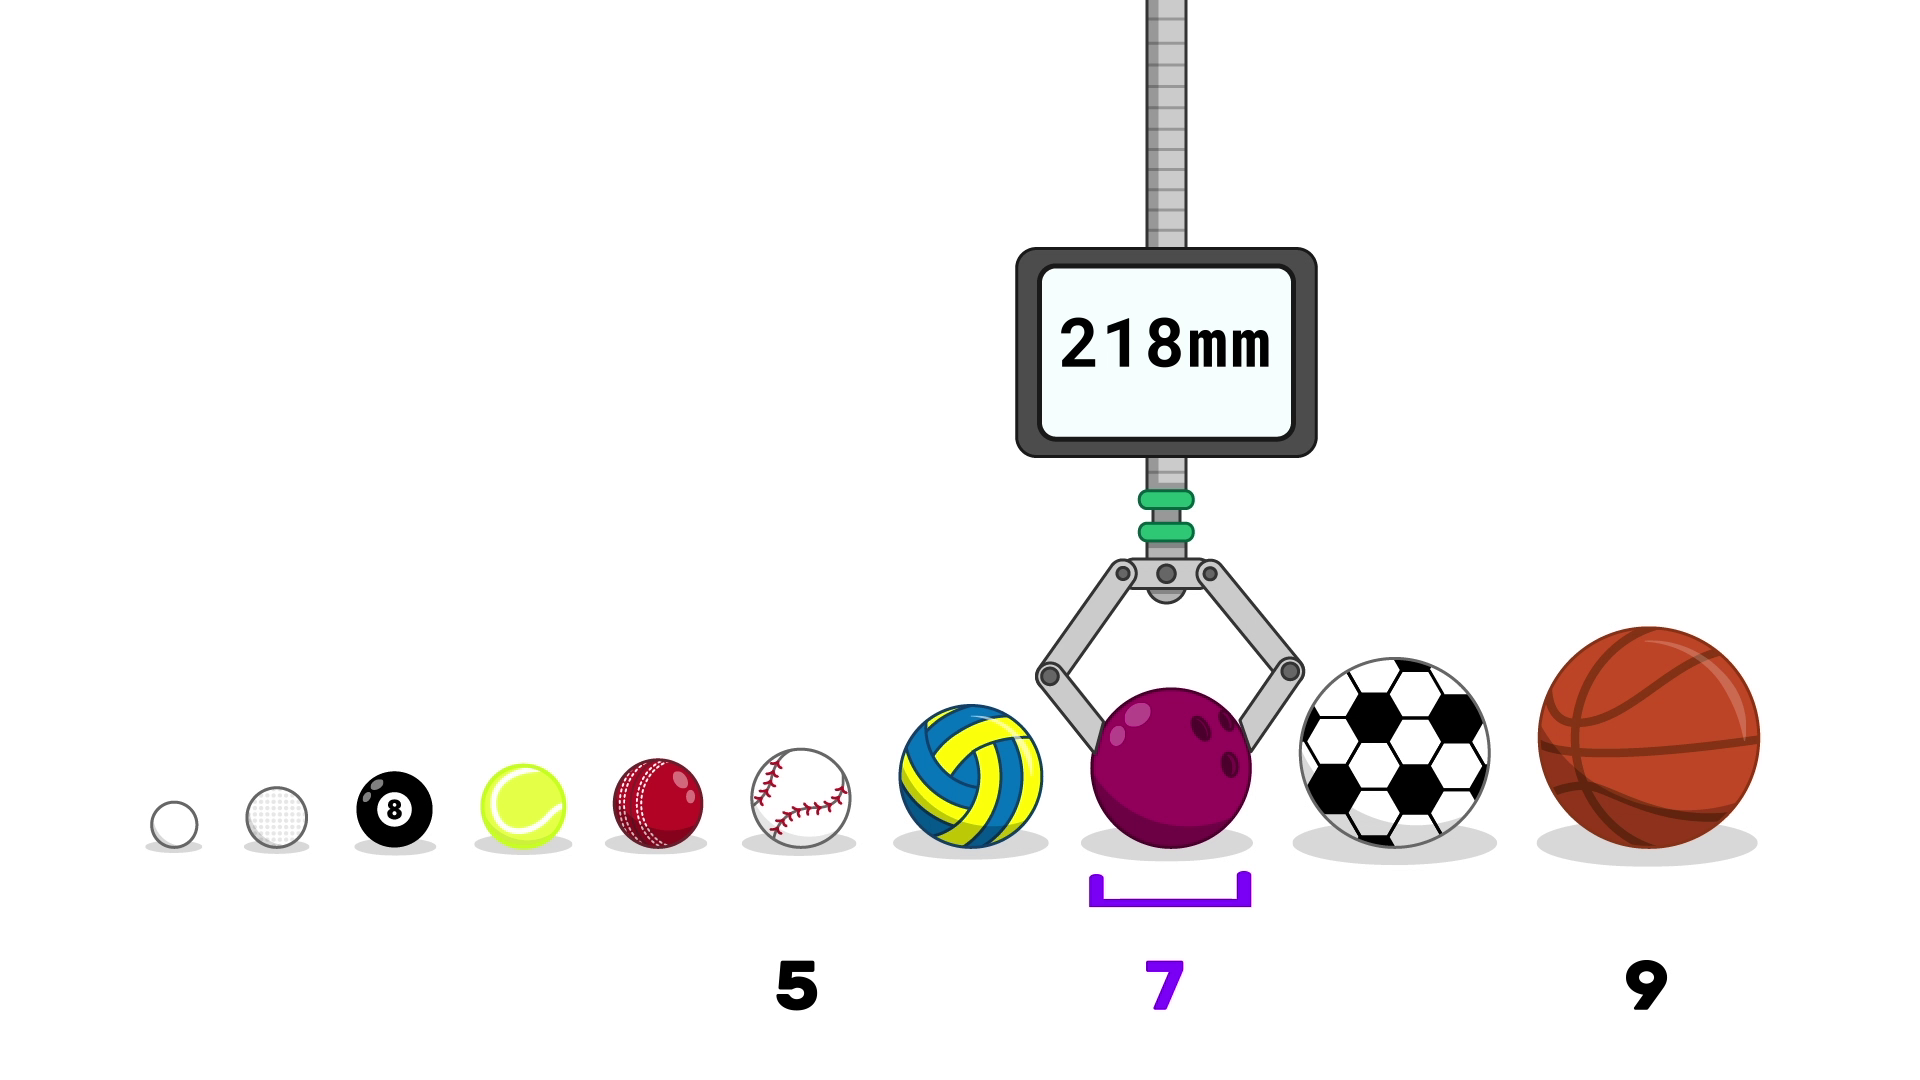 The shelf of 10 sorted balls above. The baseball has a black number five underneath it, and the basketball has a black number nine beneath it. There is a purple number seven underneath the bowling ball. The robotic claw is measuring the width of the bowling ball, and is displaying 218mm.